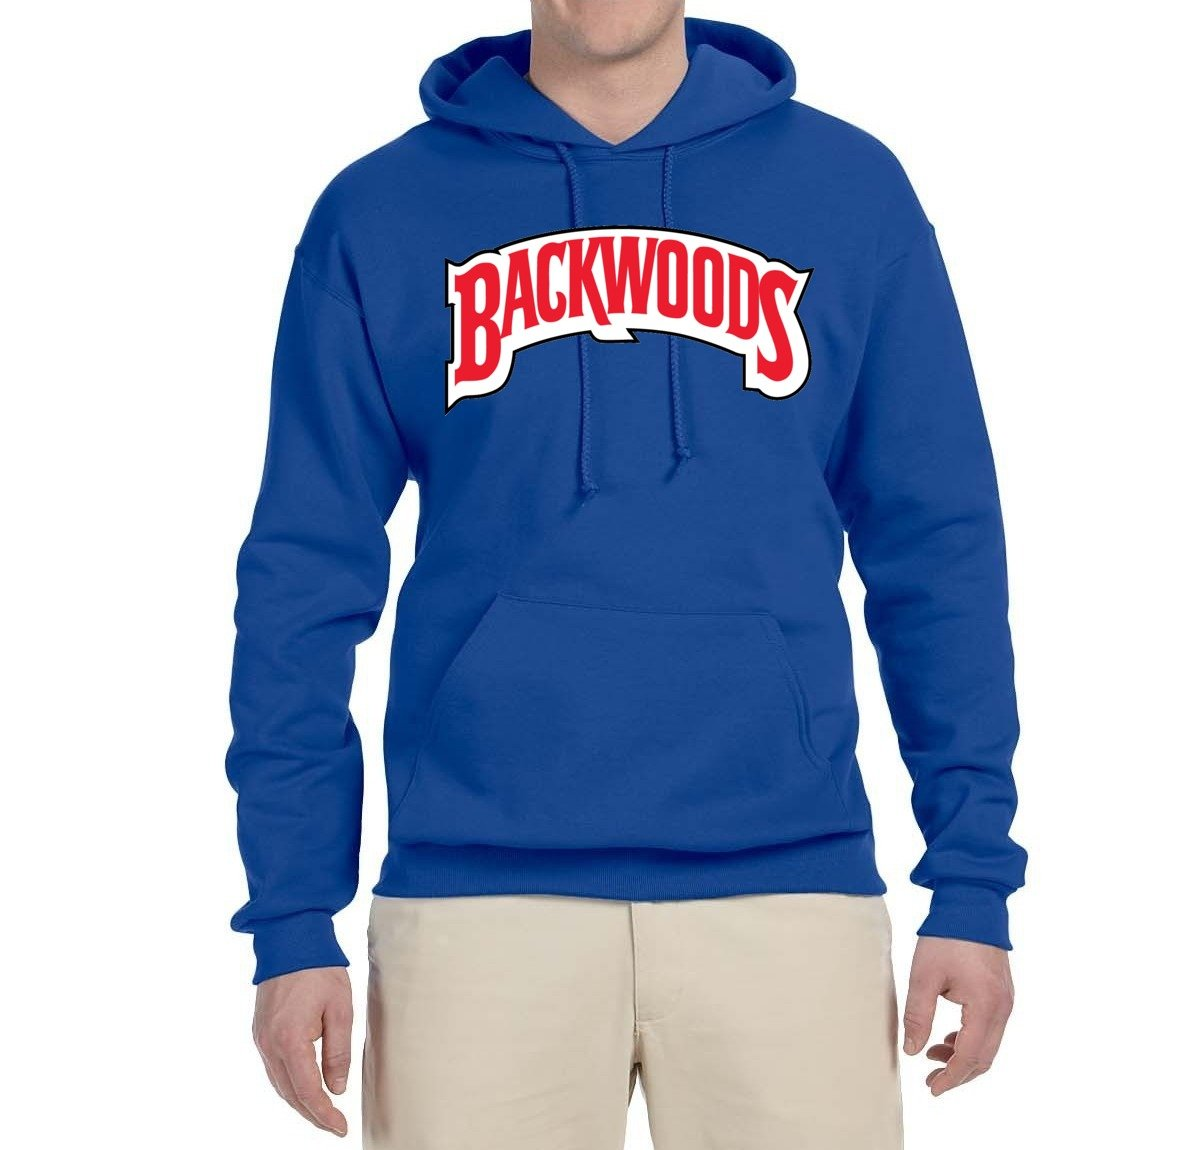 Backwoods Red Logo S Pop Culture Hooded Graphic Shirts